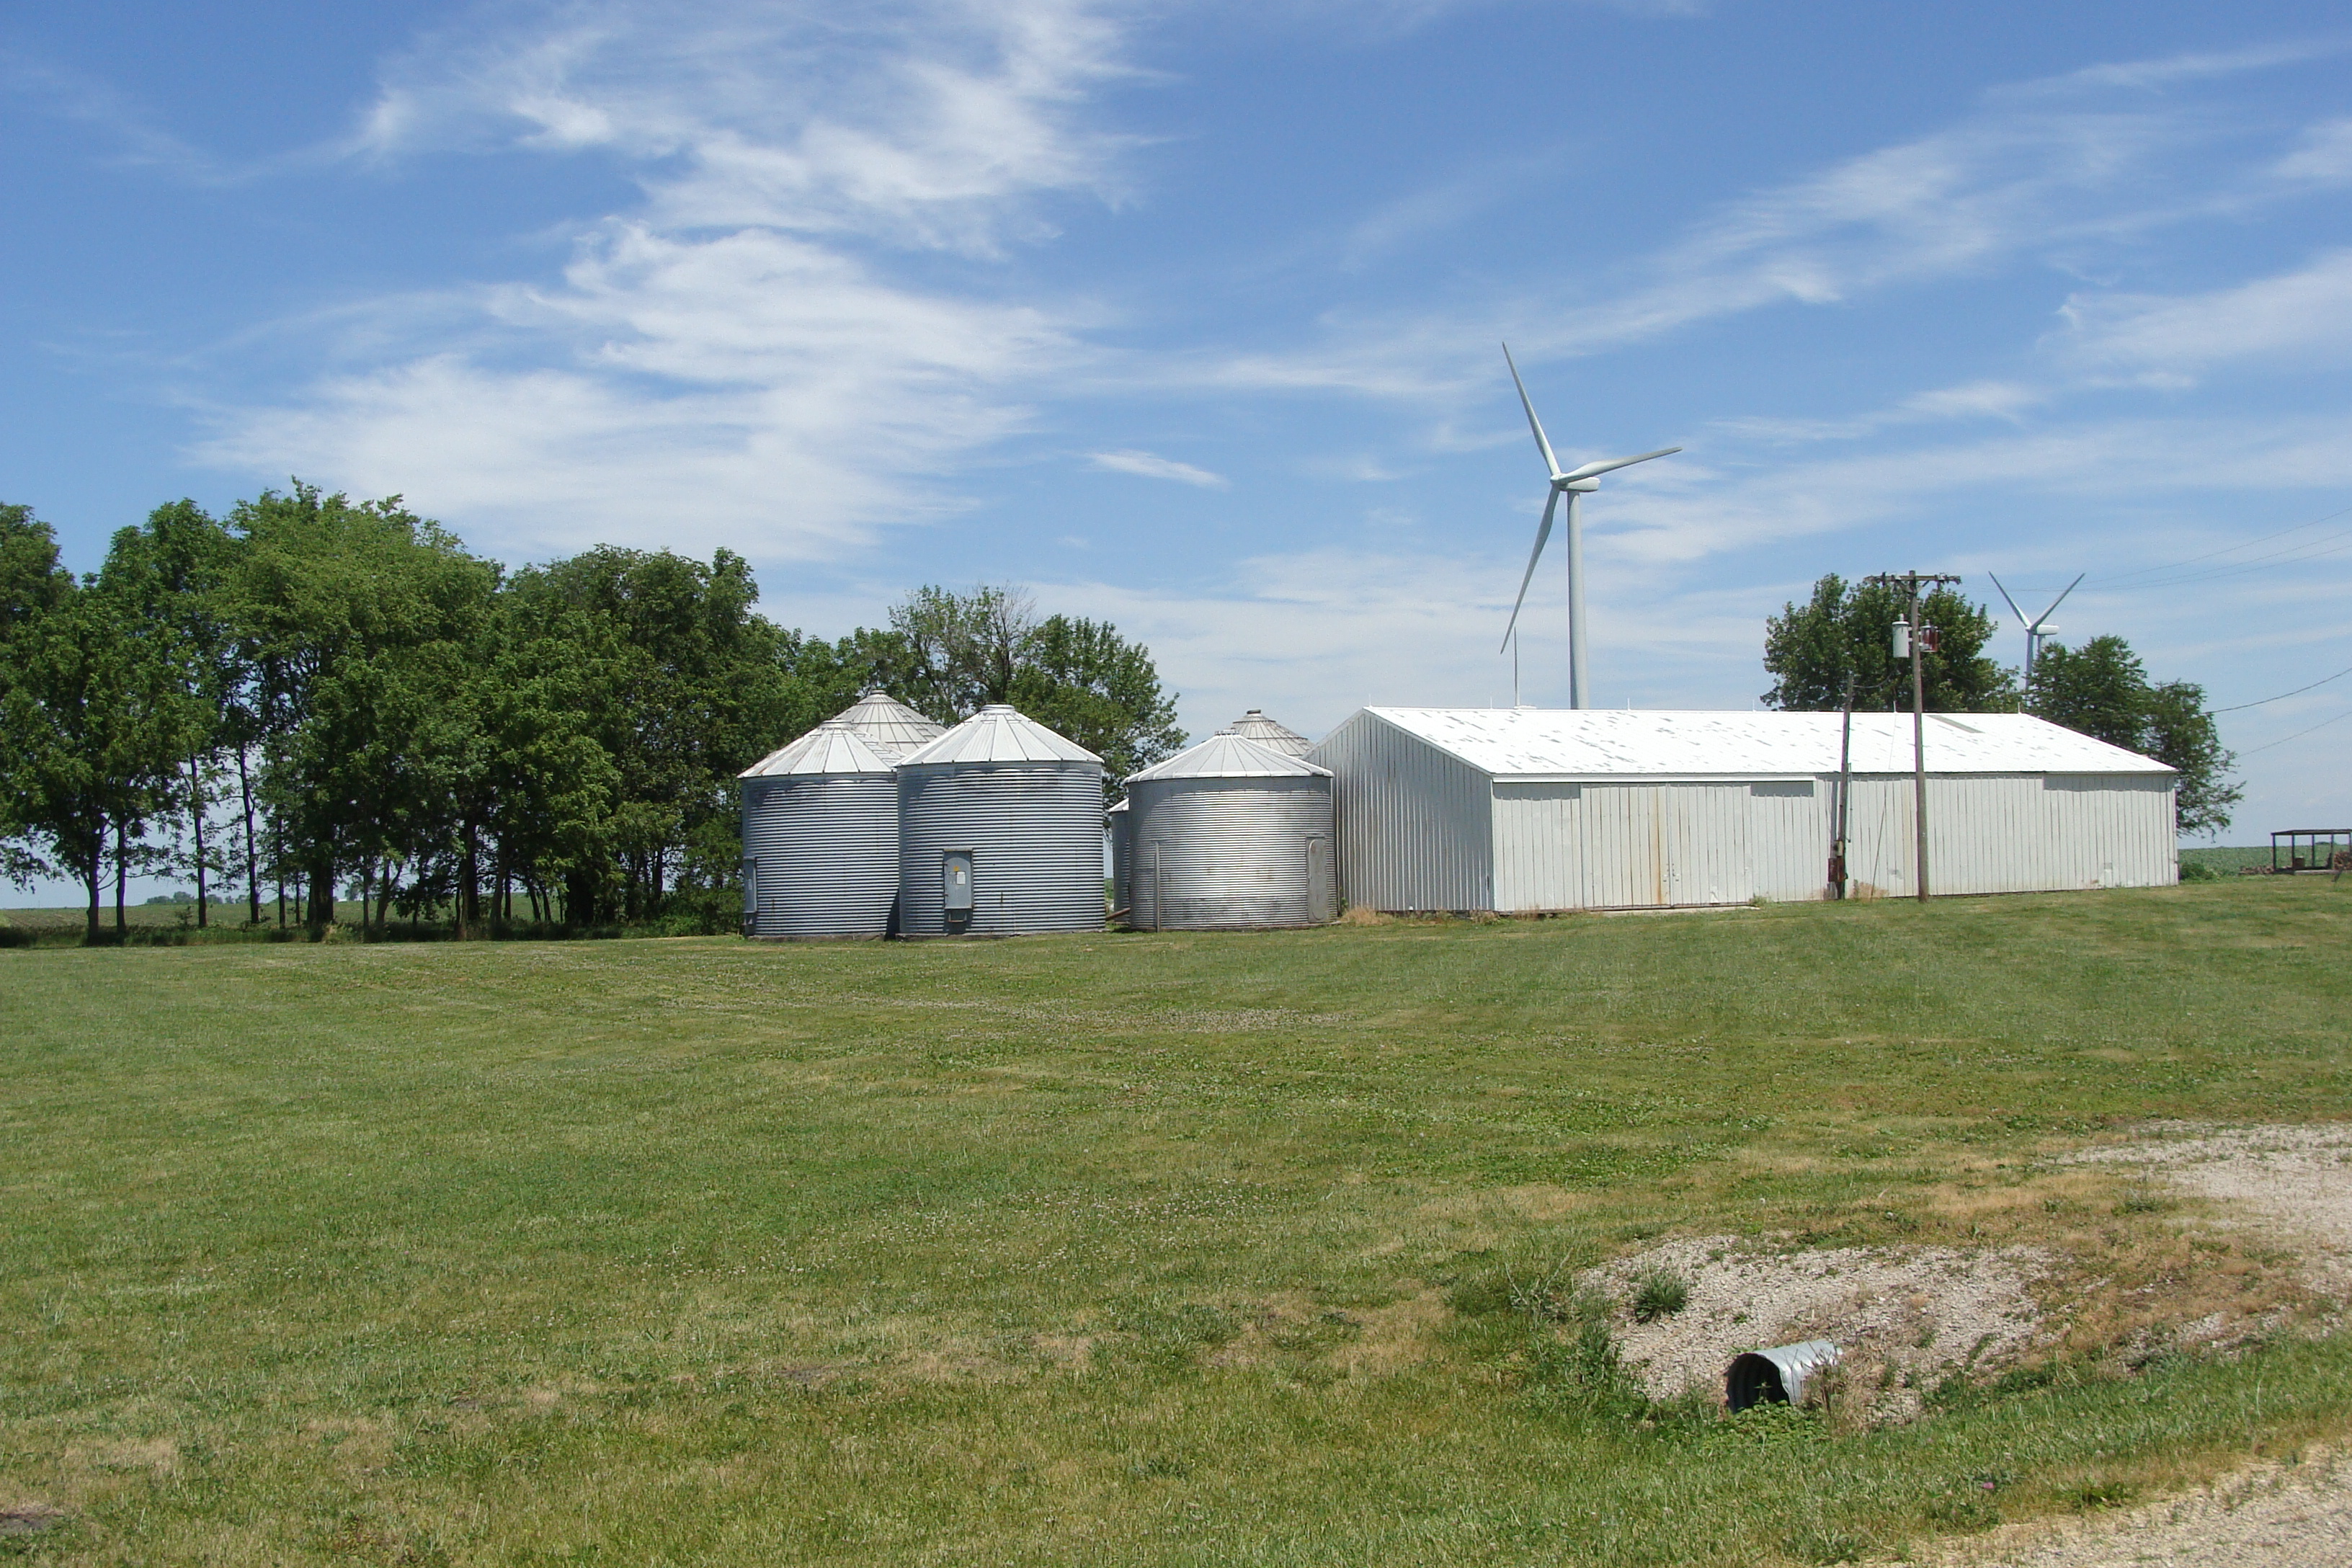 Picture of machine shed, bins, and win turbine